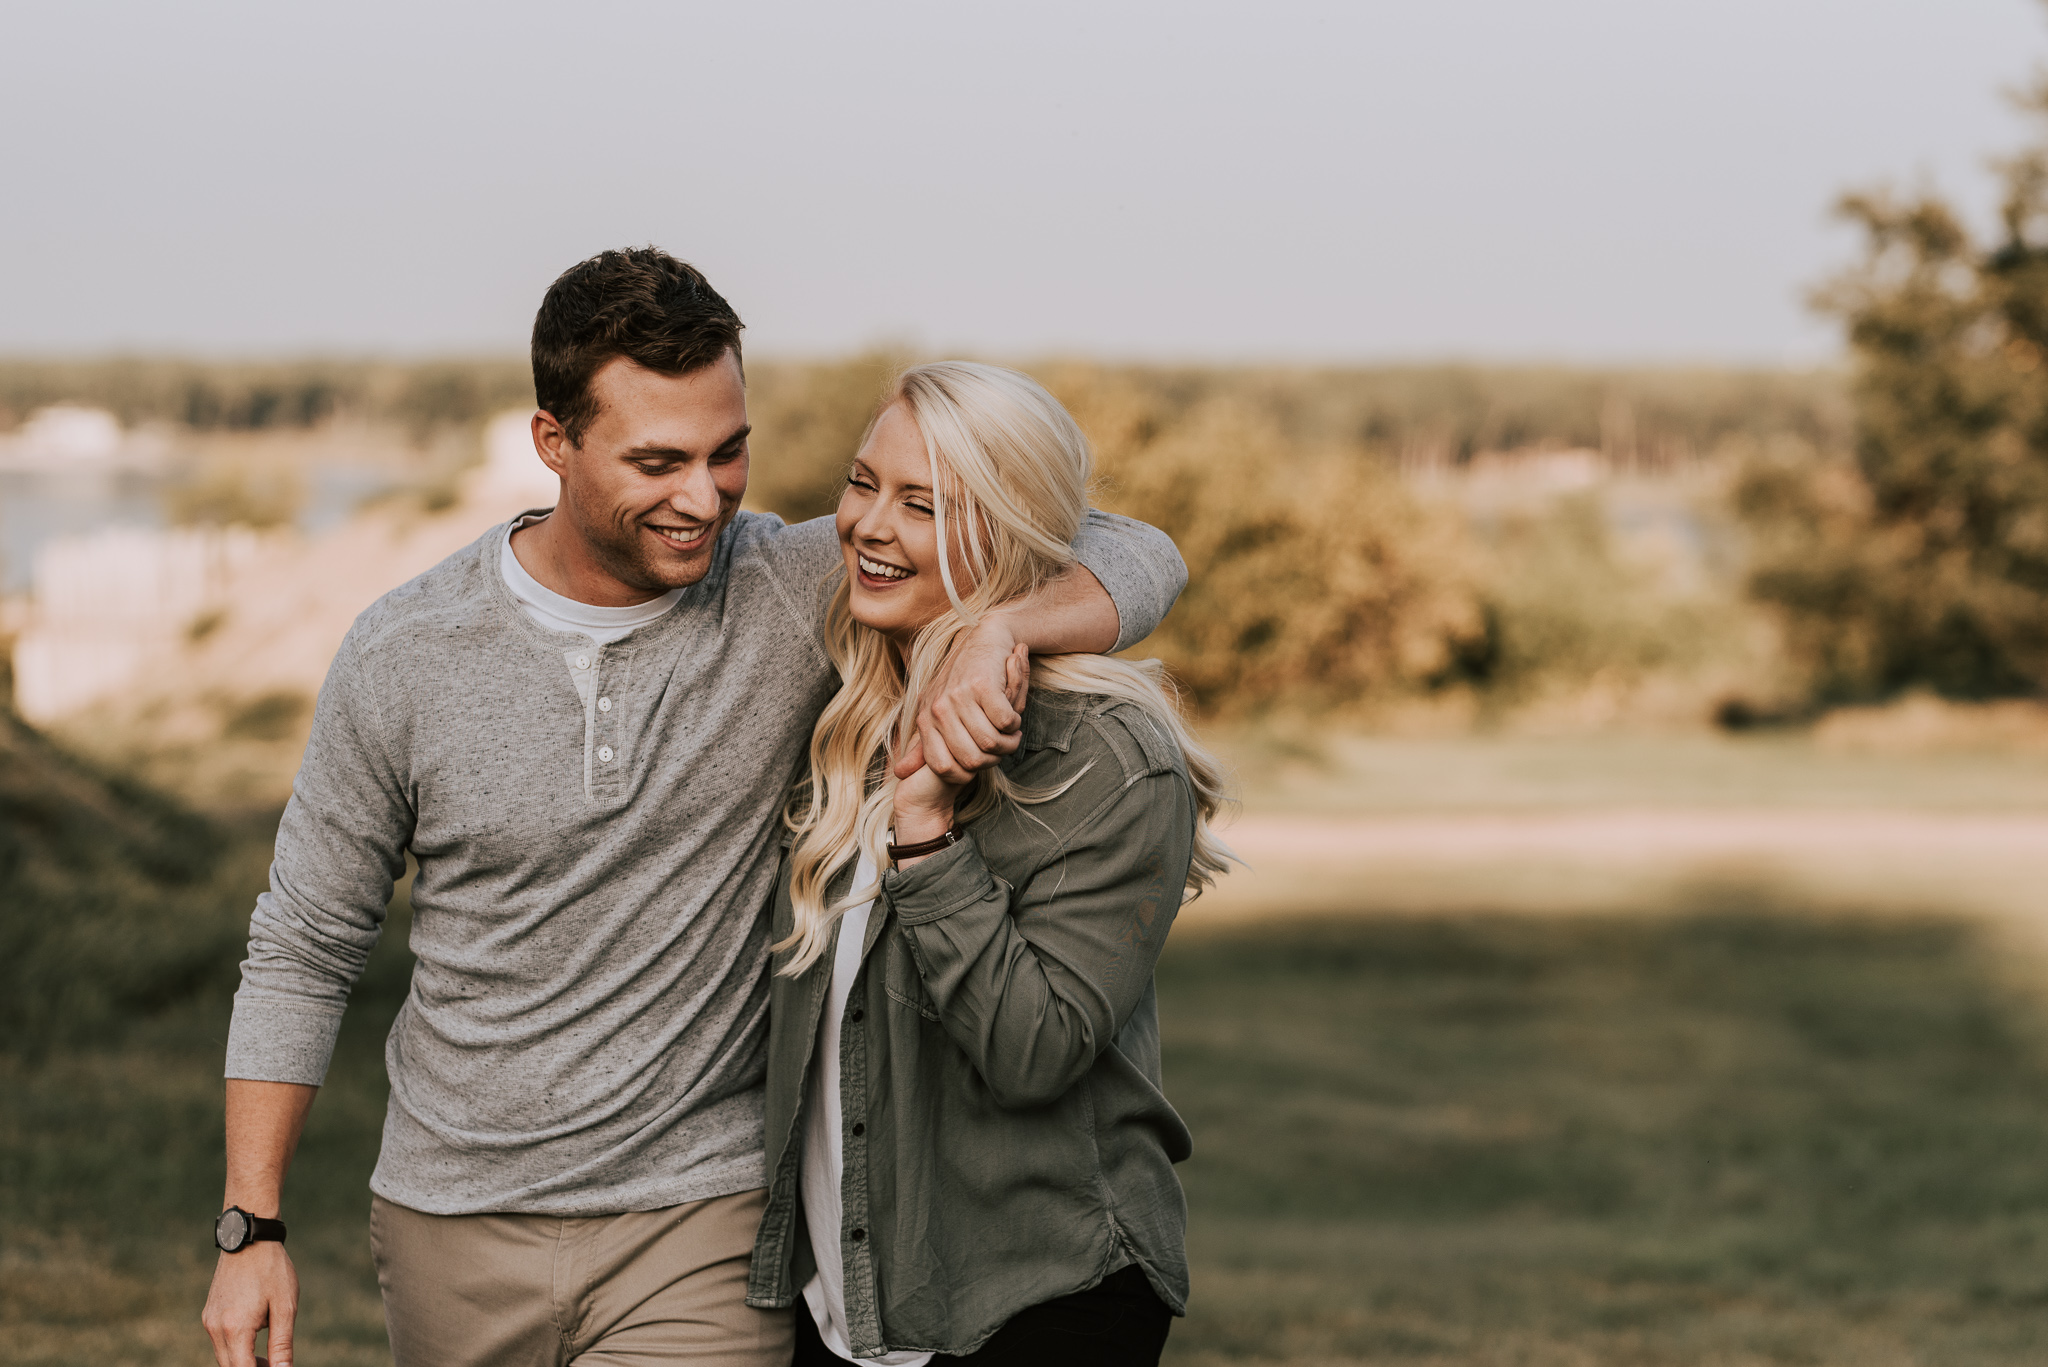 fort-lincoln-state-park-engagement-wedding-photography-10.jpg